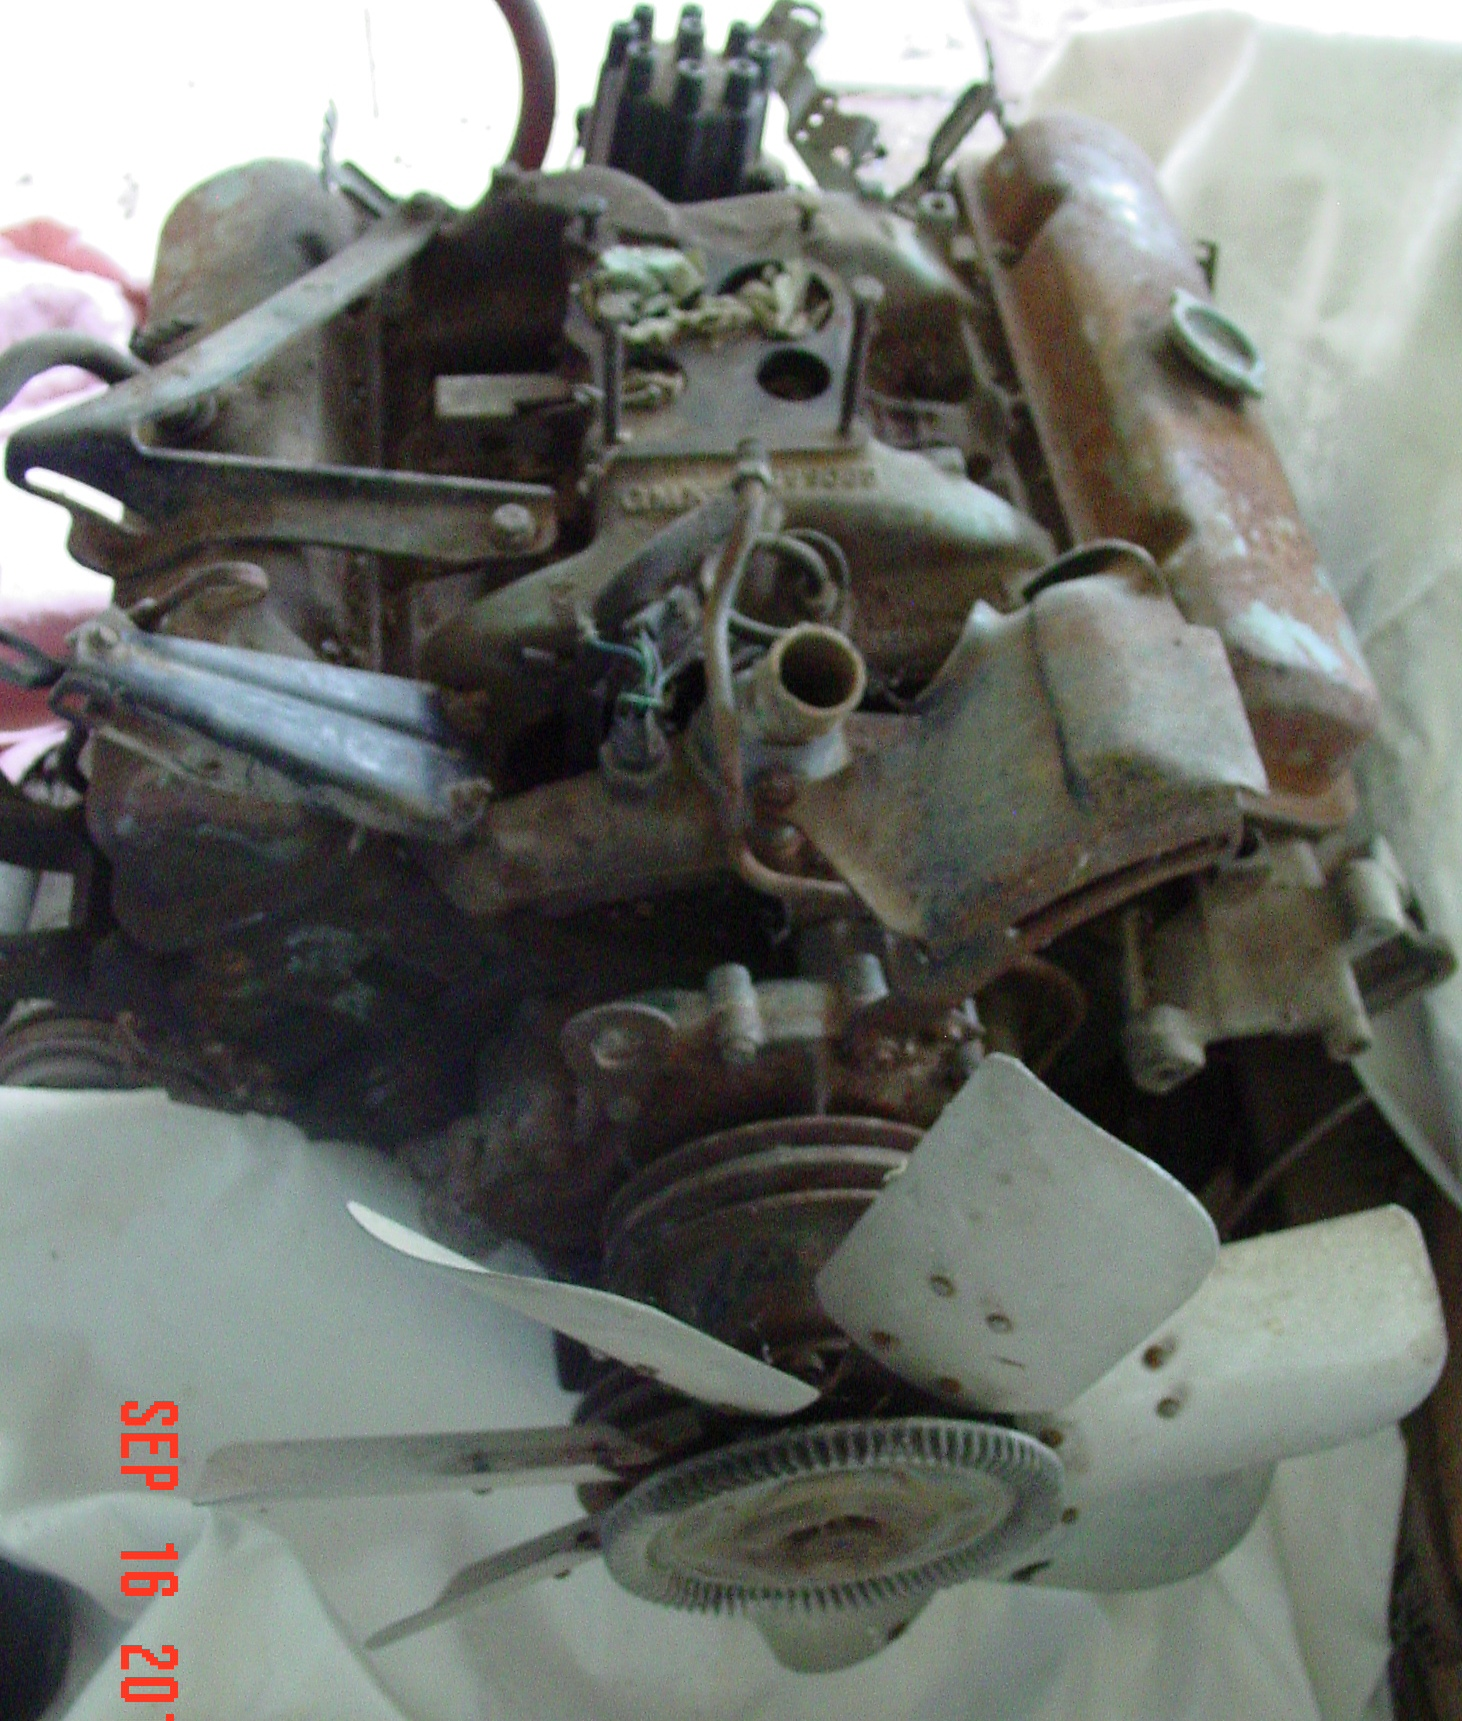 For Sale - 1970 455 HO engine-1-front.jpg